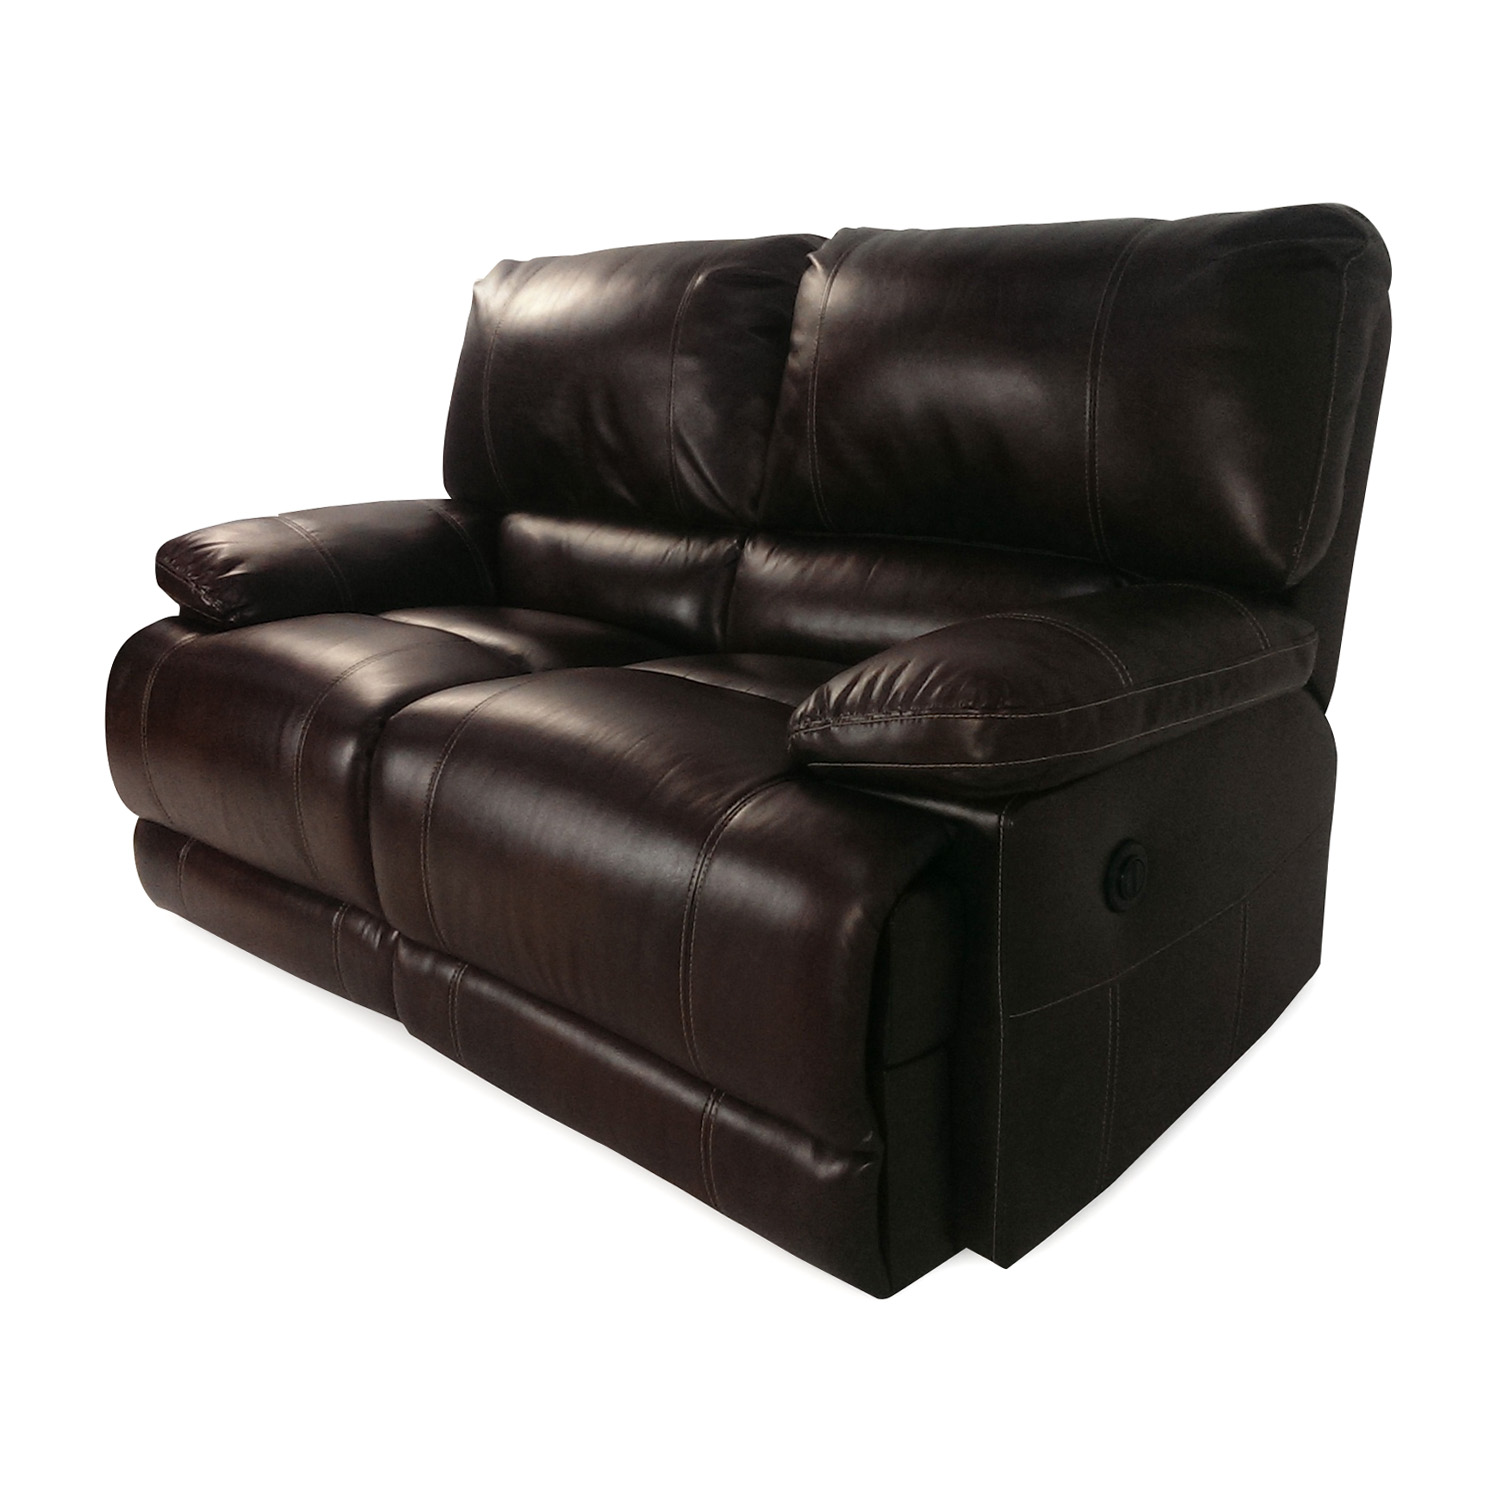 50 Off Bobs Furniture Bobs Furniture Reclining Loveseat